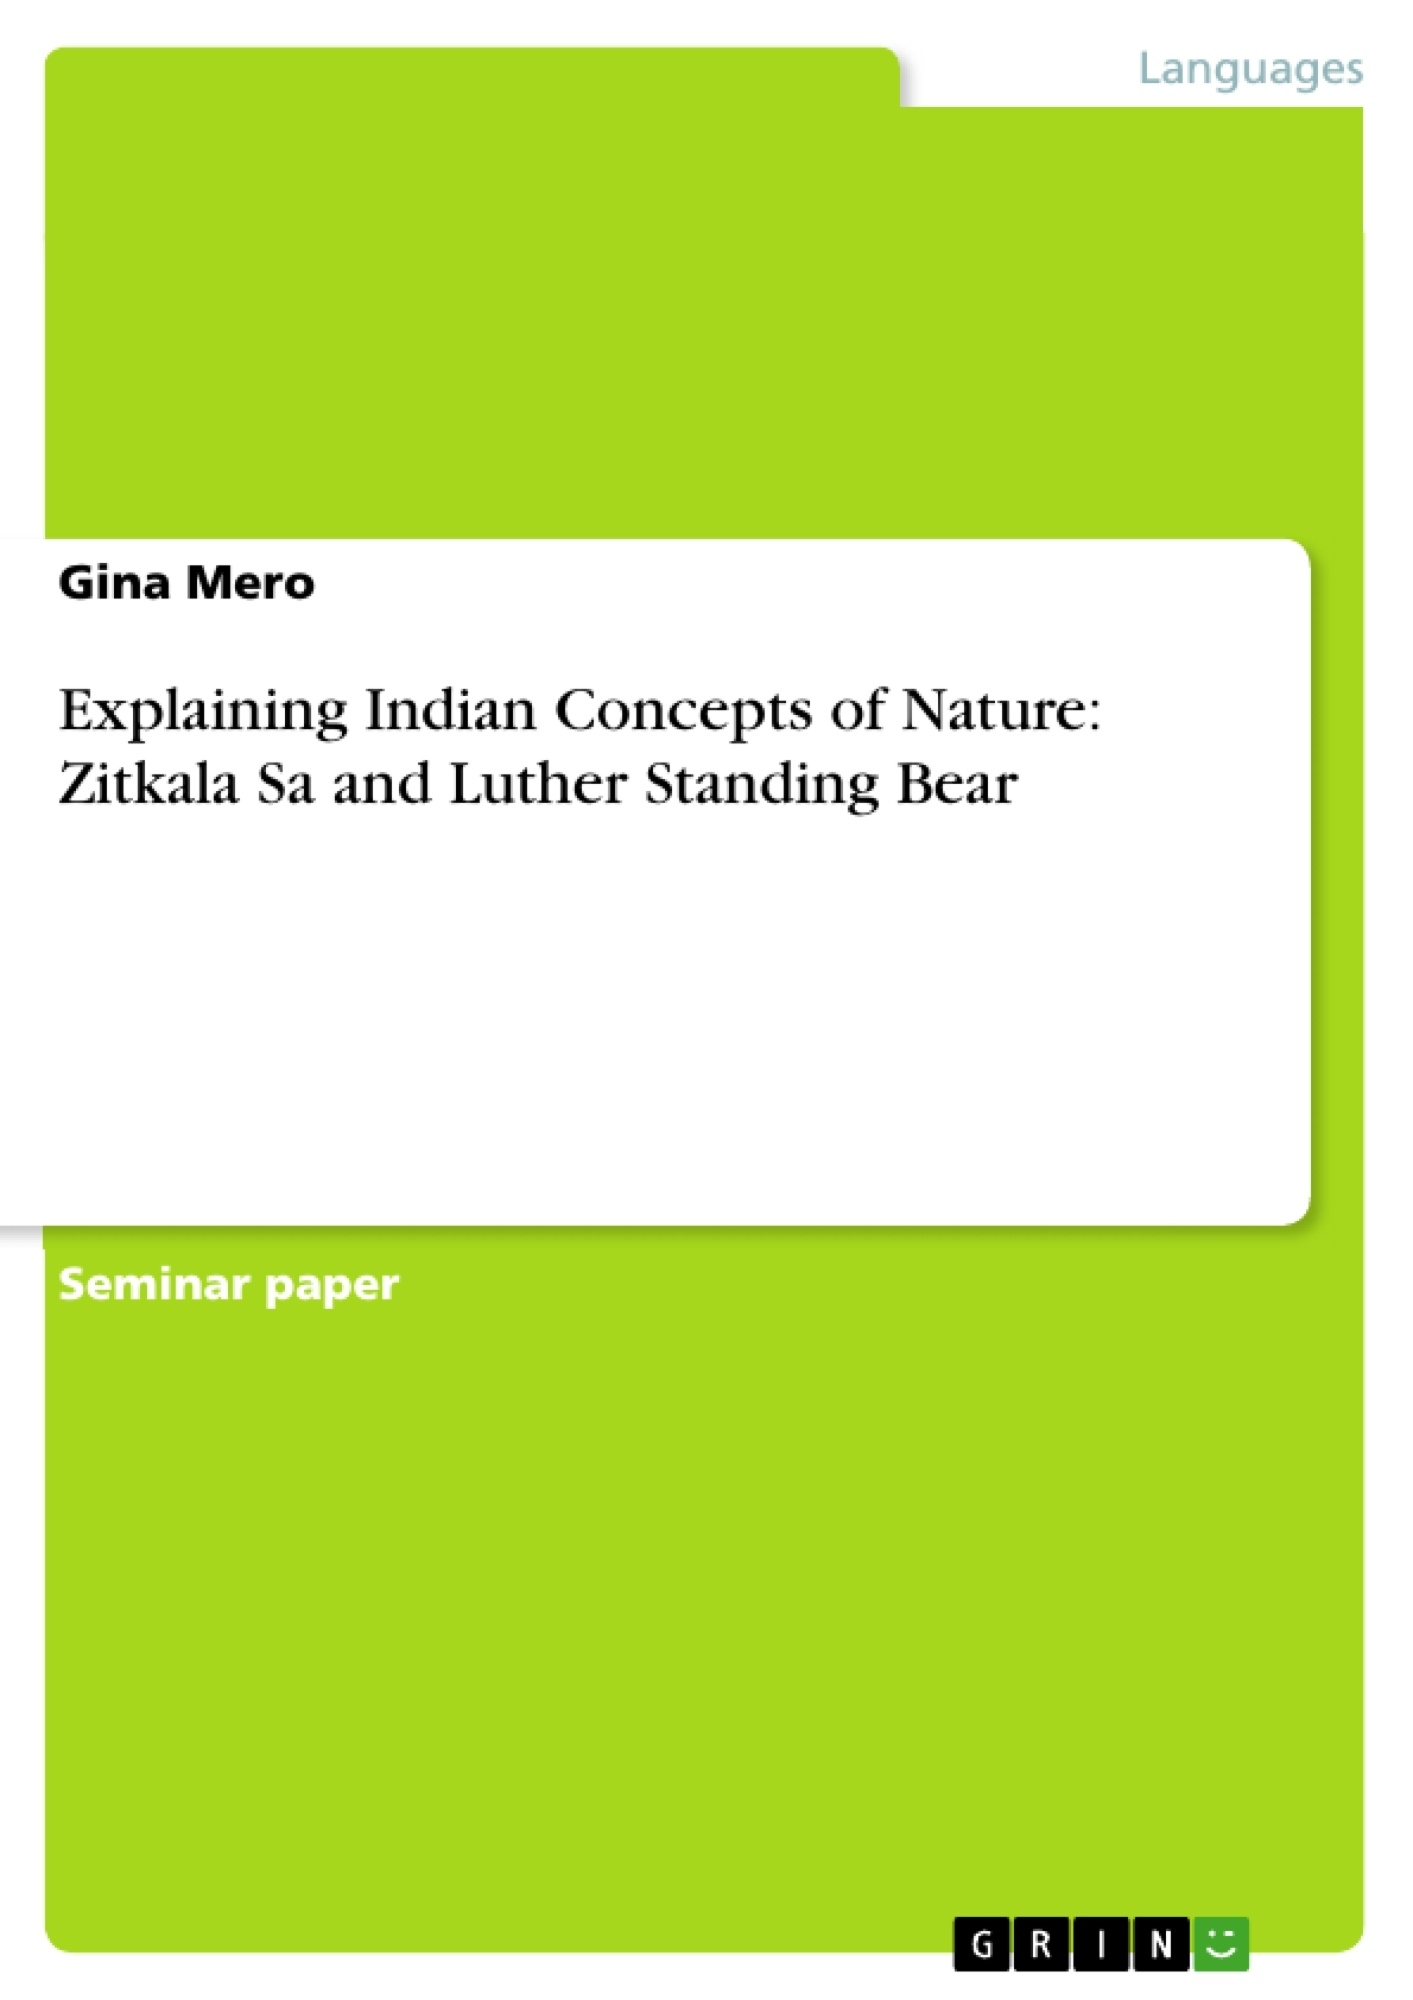 Title: Explaining Indian Concepts of Nature: Zitkala Sa and Luther Standing Bear